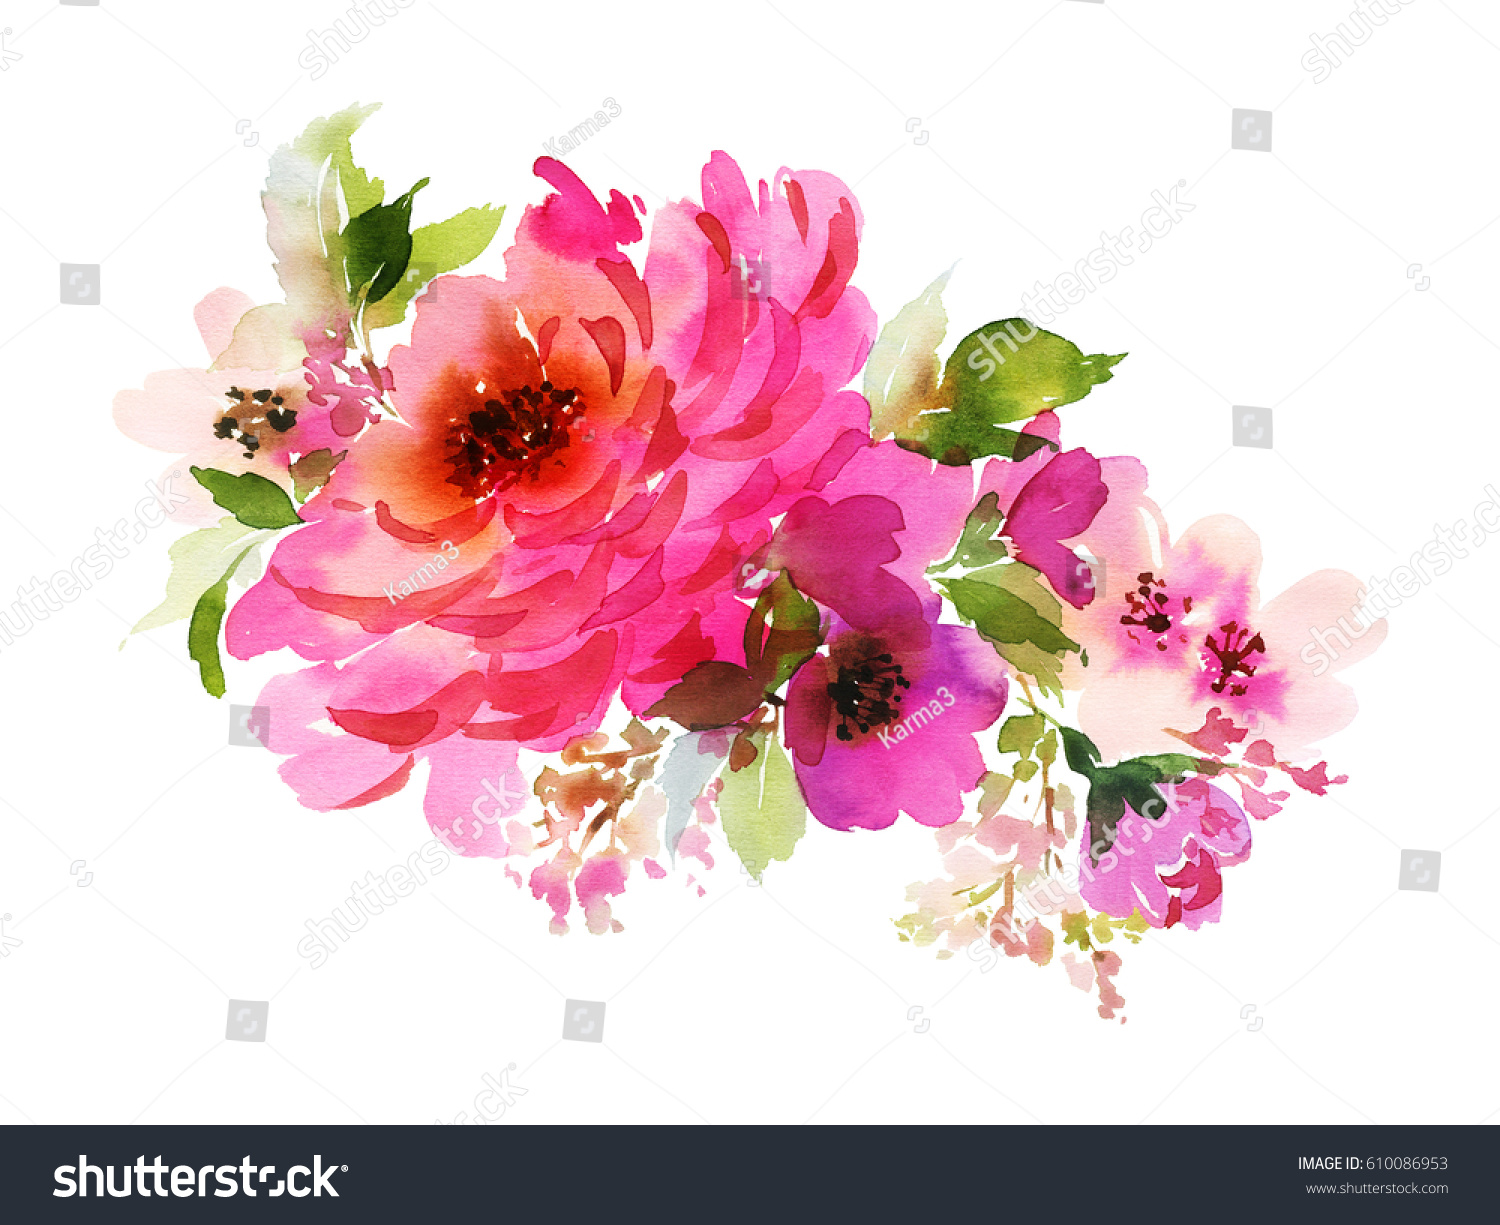 Bouquet big pink rose small flowers stock illustration 610086953 a bouquet with a big pink rose and small flowers in bright colors watercolor horizontal izmirmasajfo